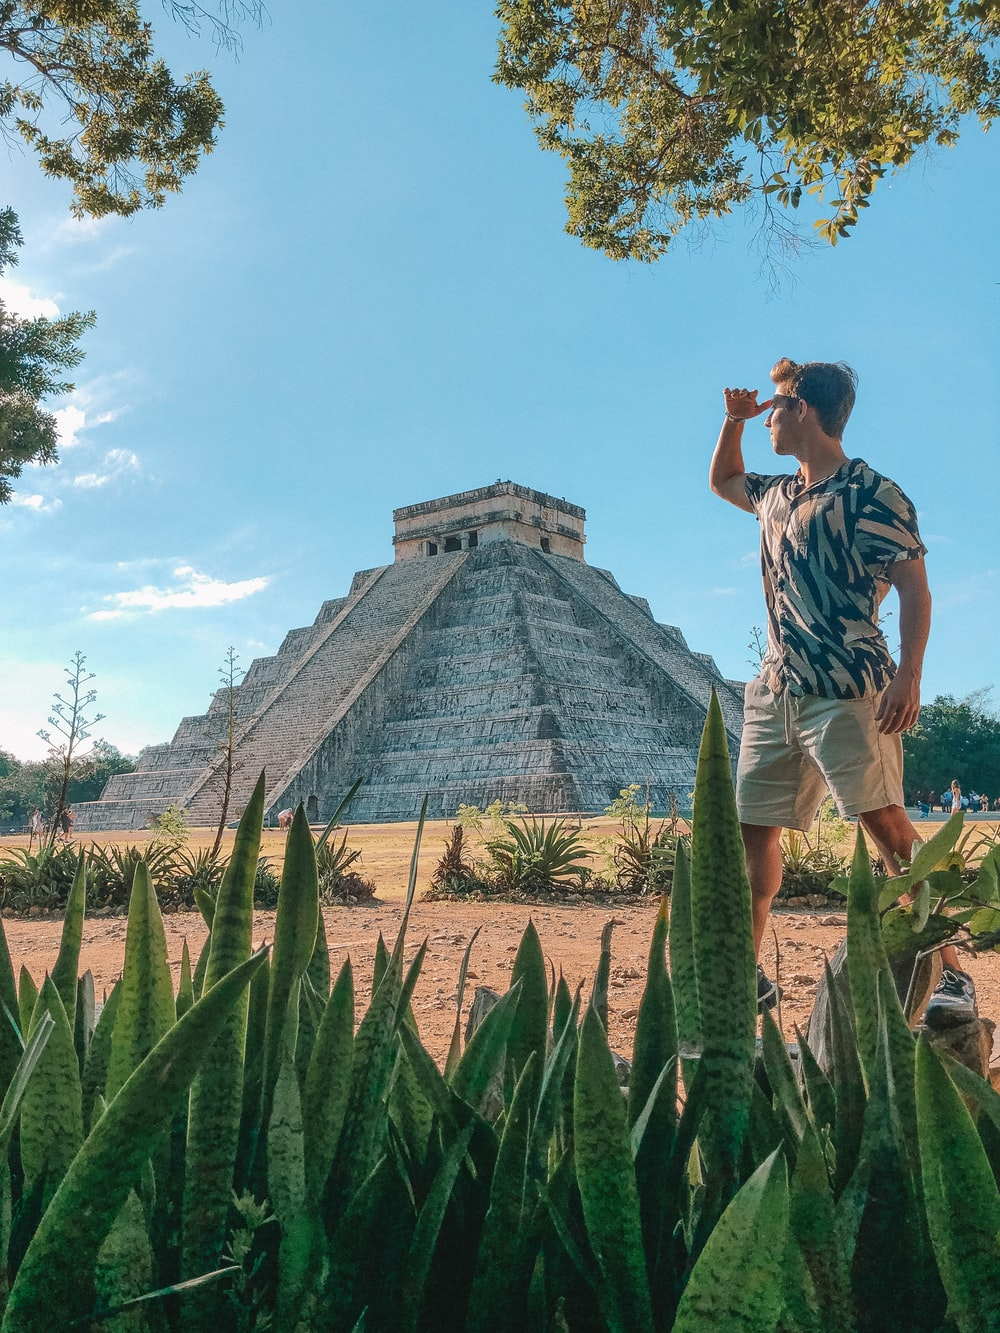 man standing in front of Chichen Itza, Mexico during daytime